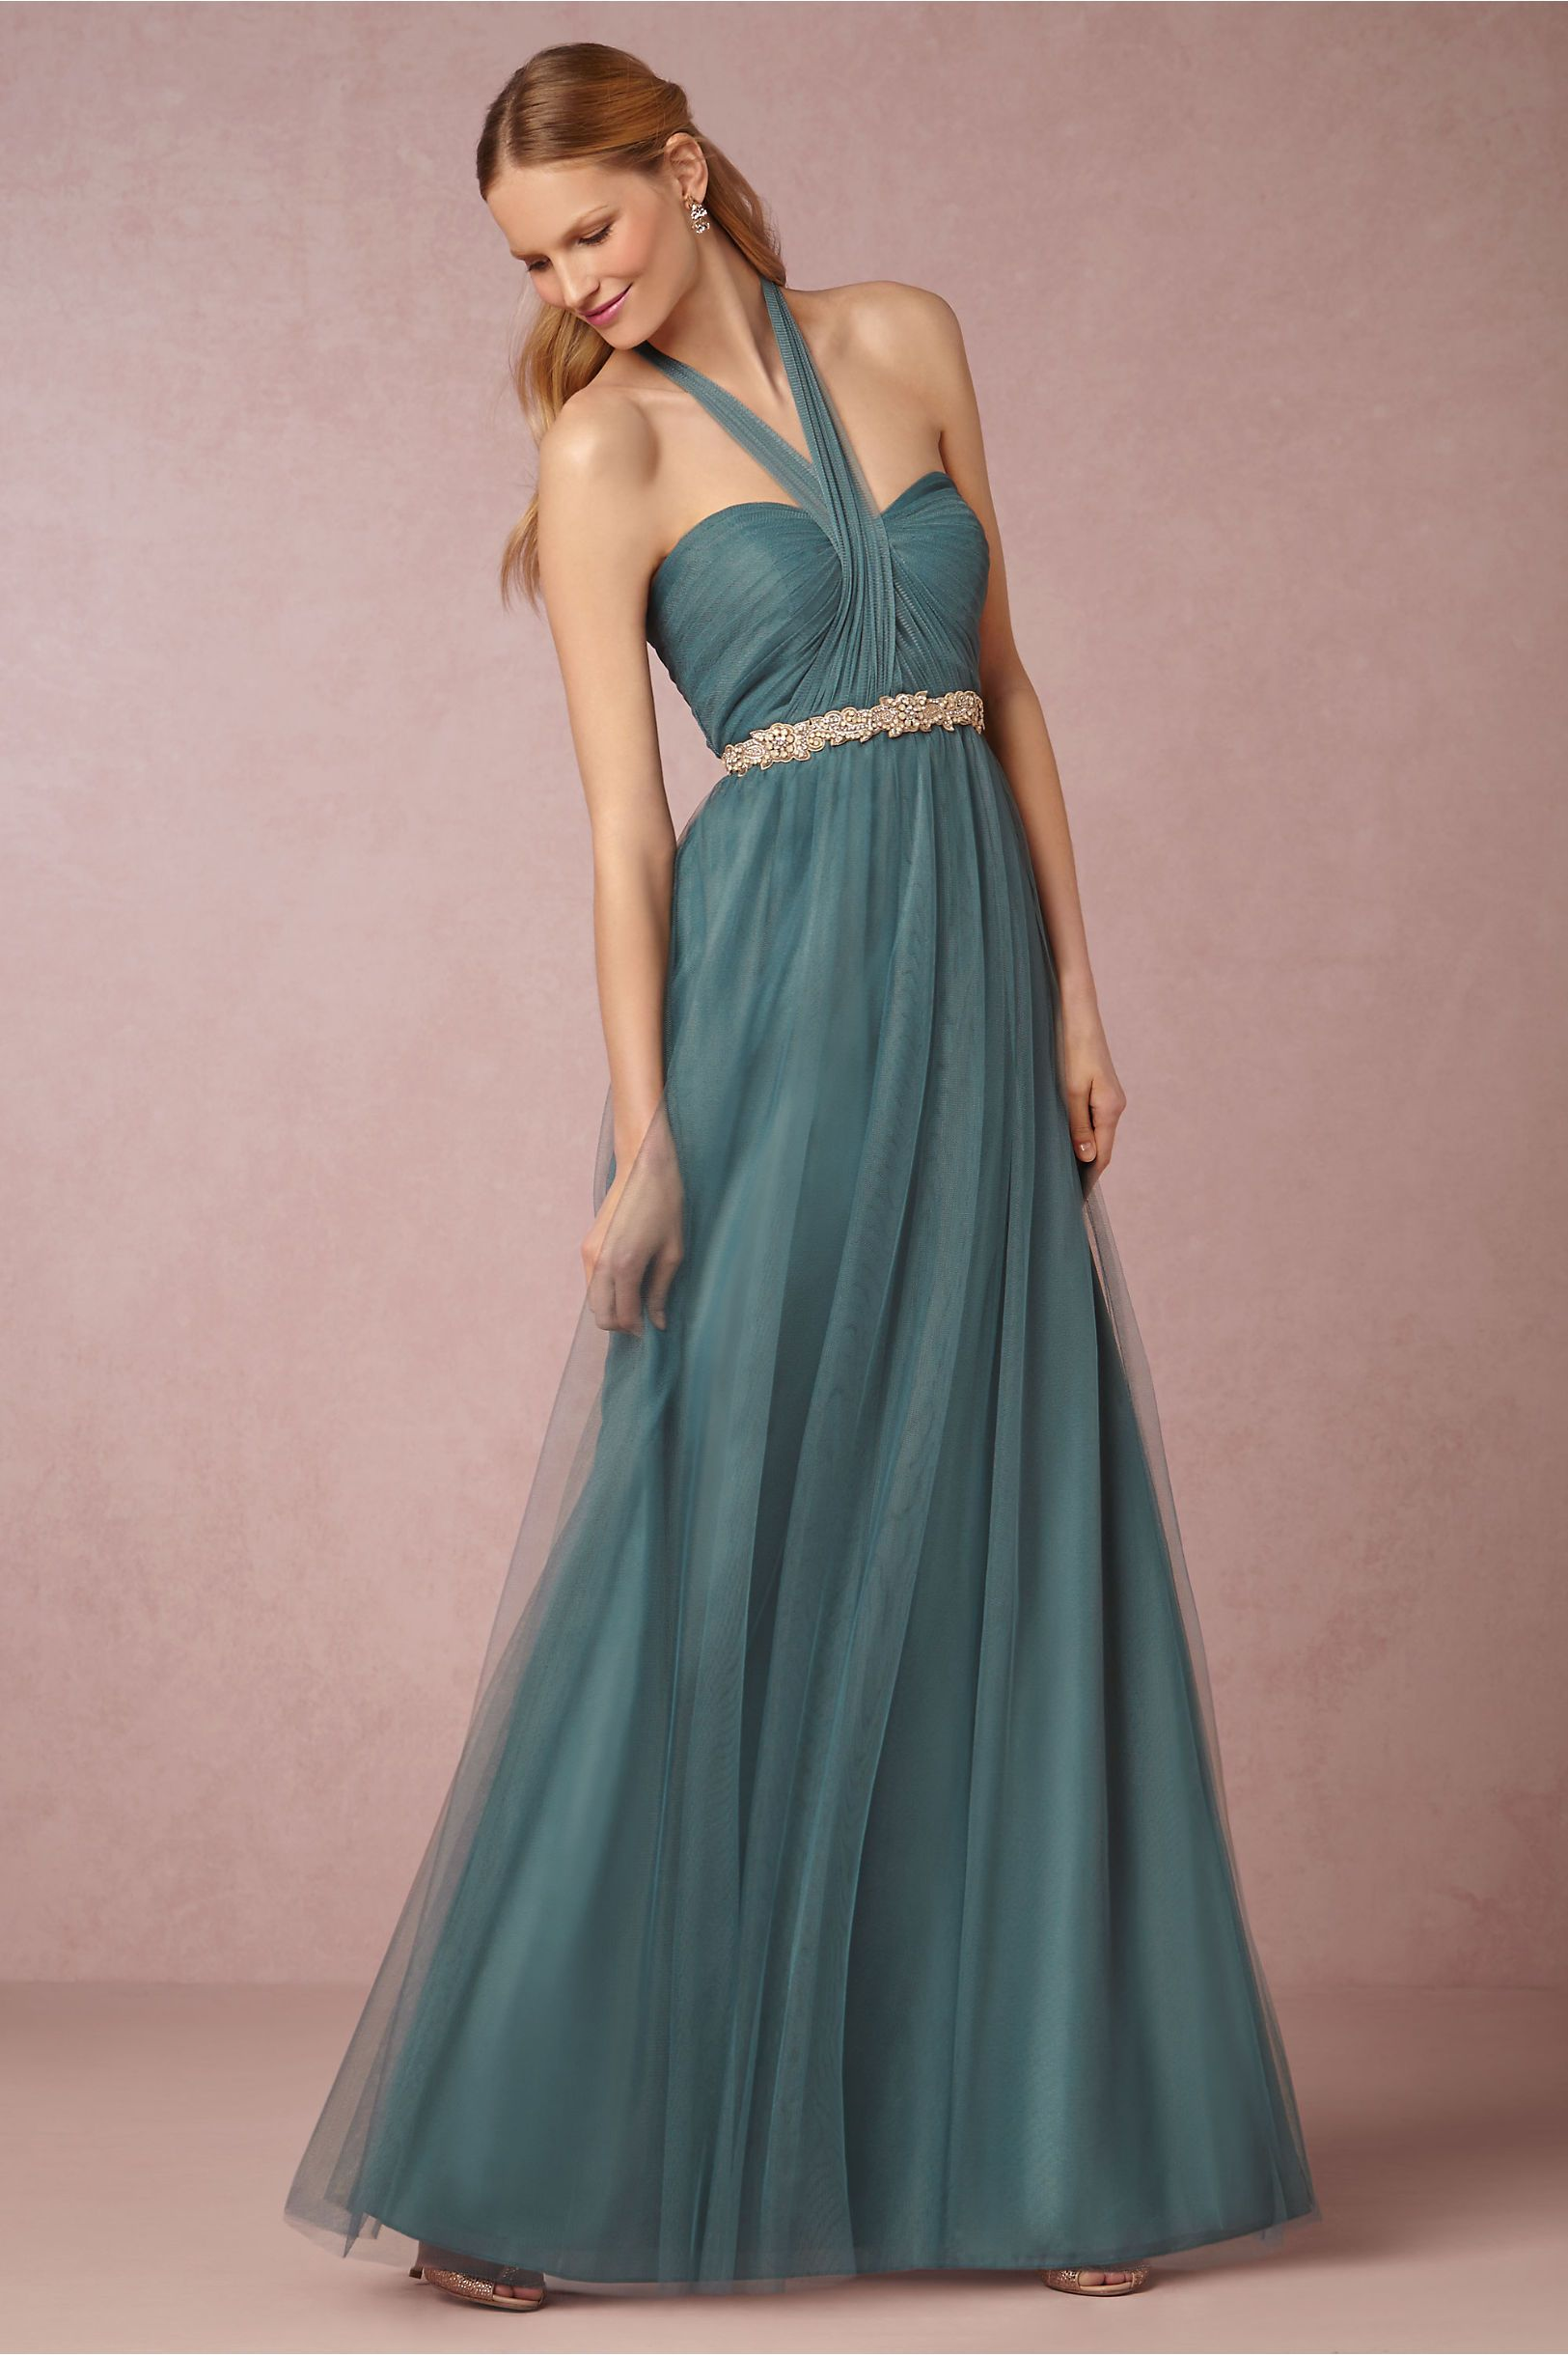 Annabelle Bridesmaids Dress in vintage teal from @BHLDN ...